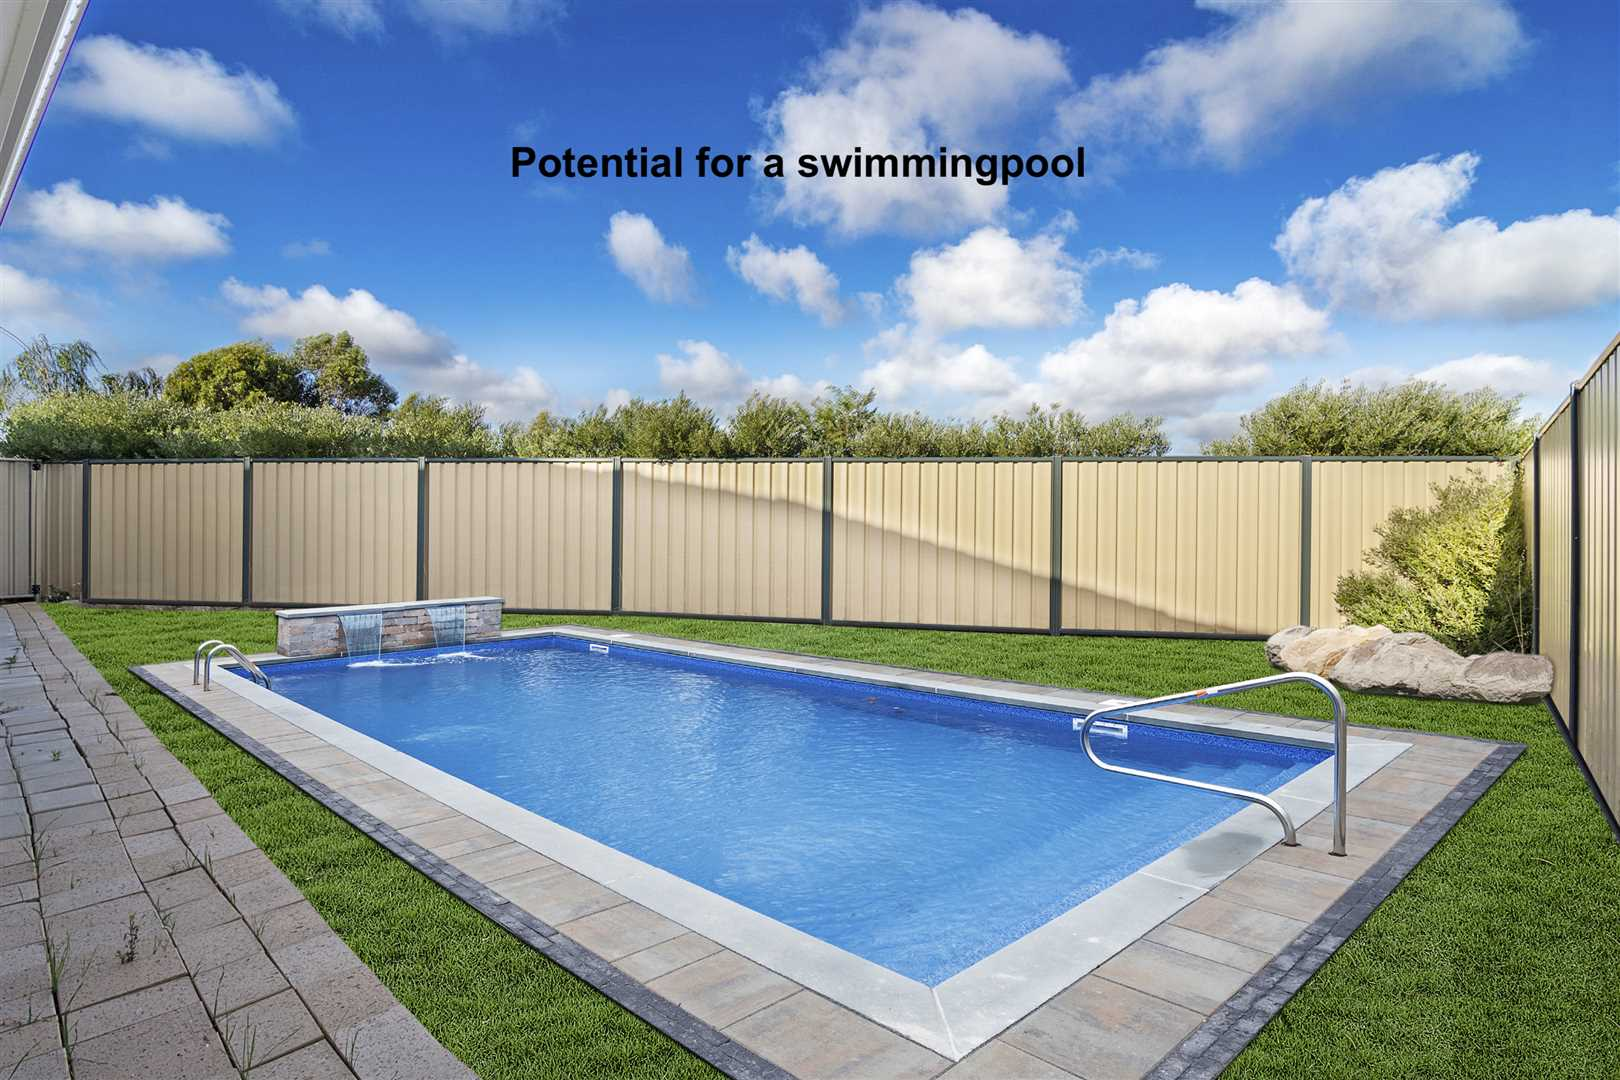 Ample room to place a pool should you wish